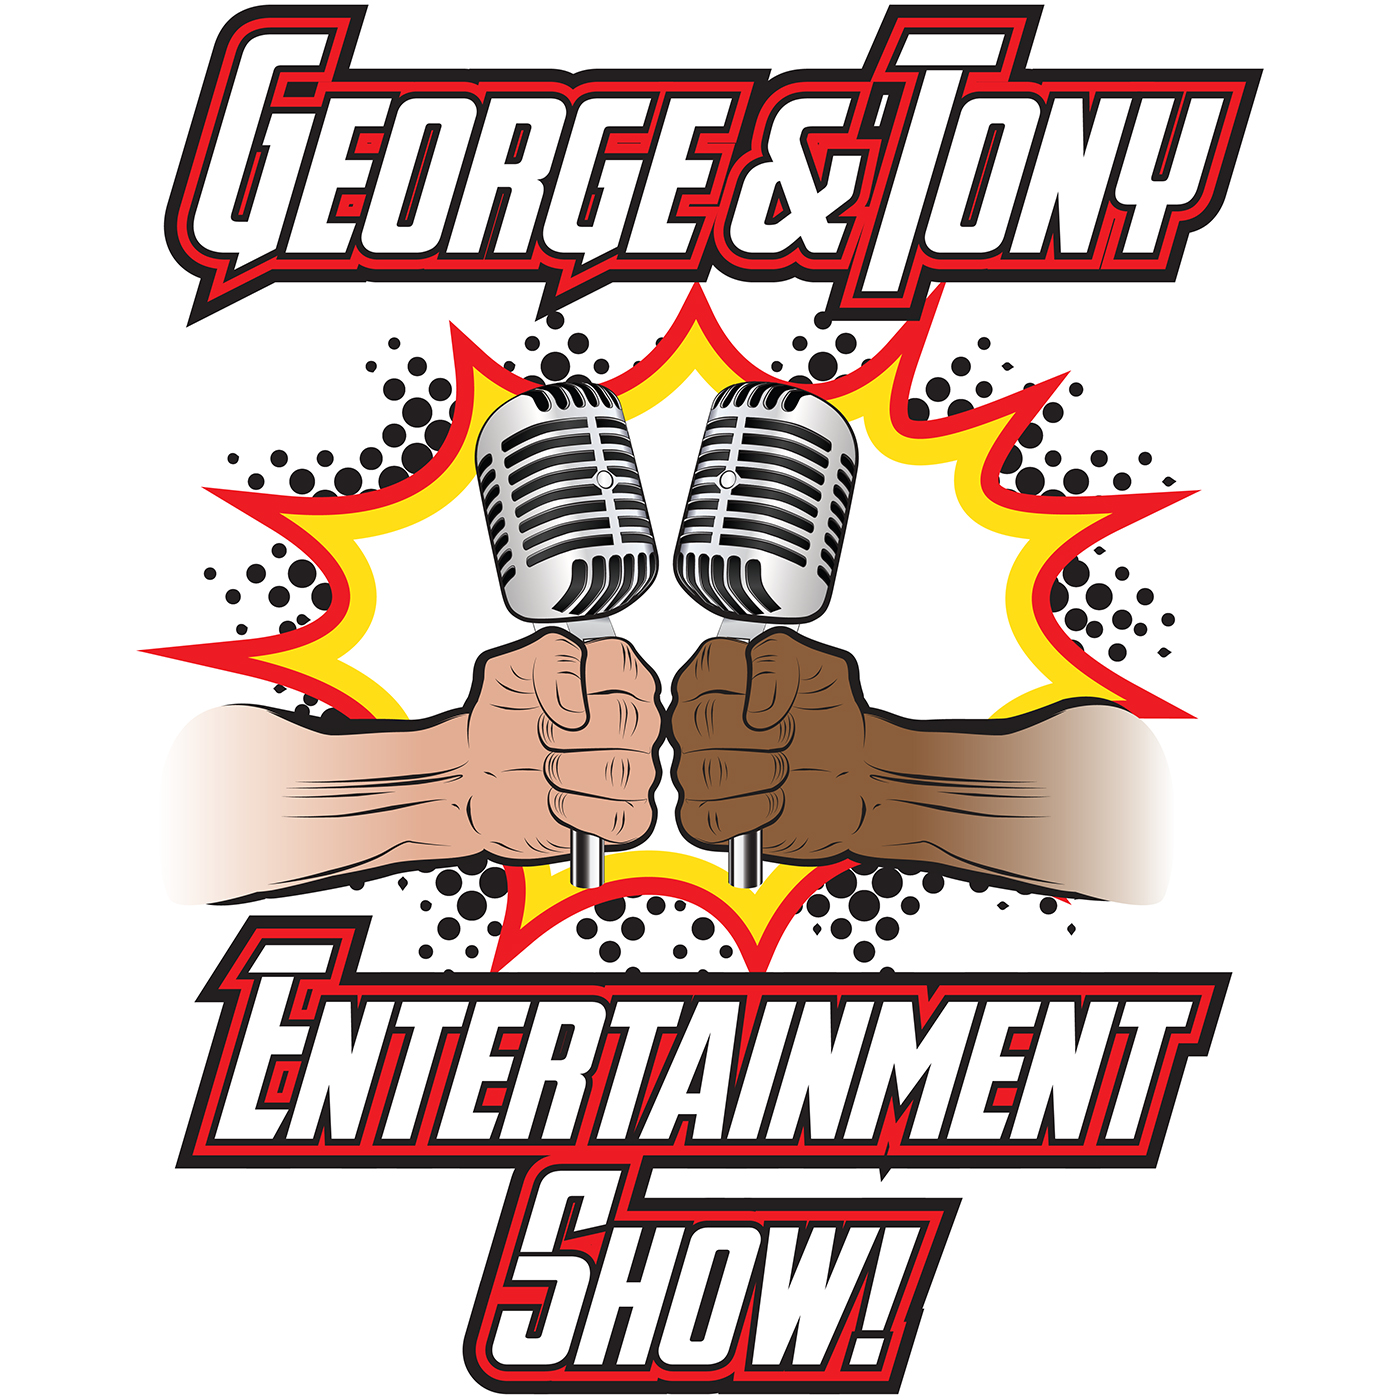 George and Tony Entertainment Show #52